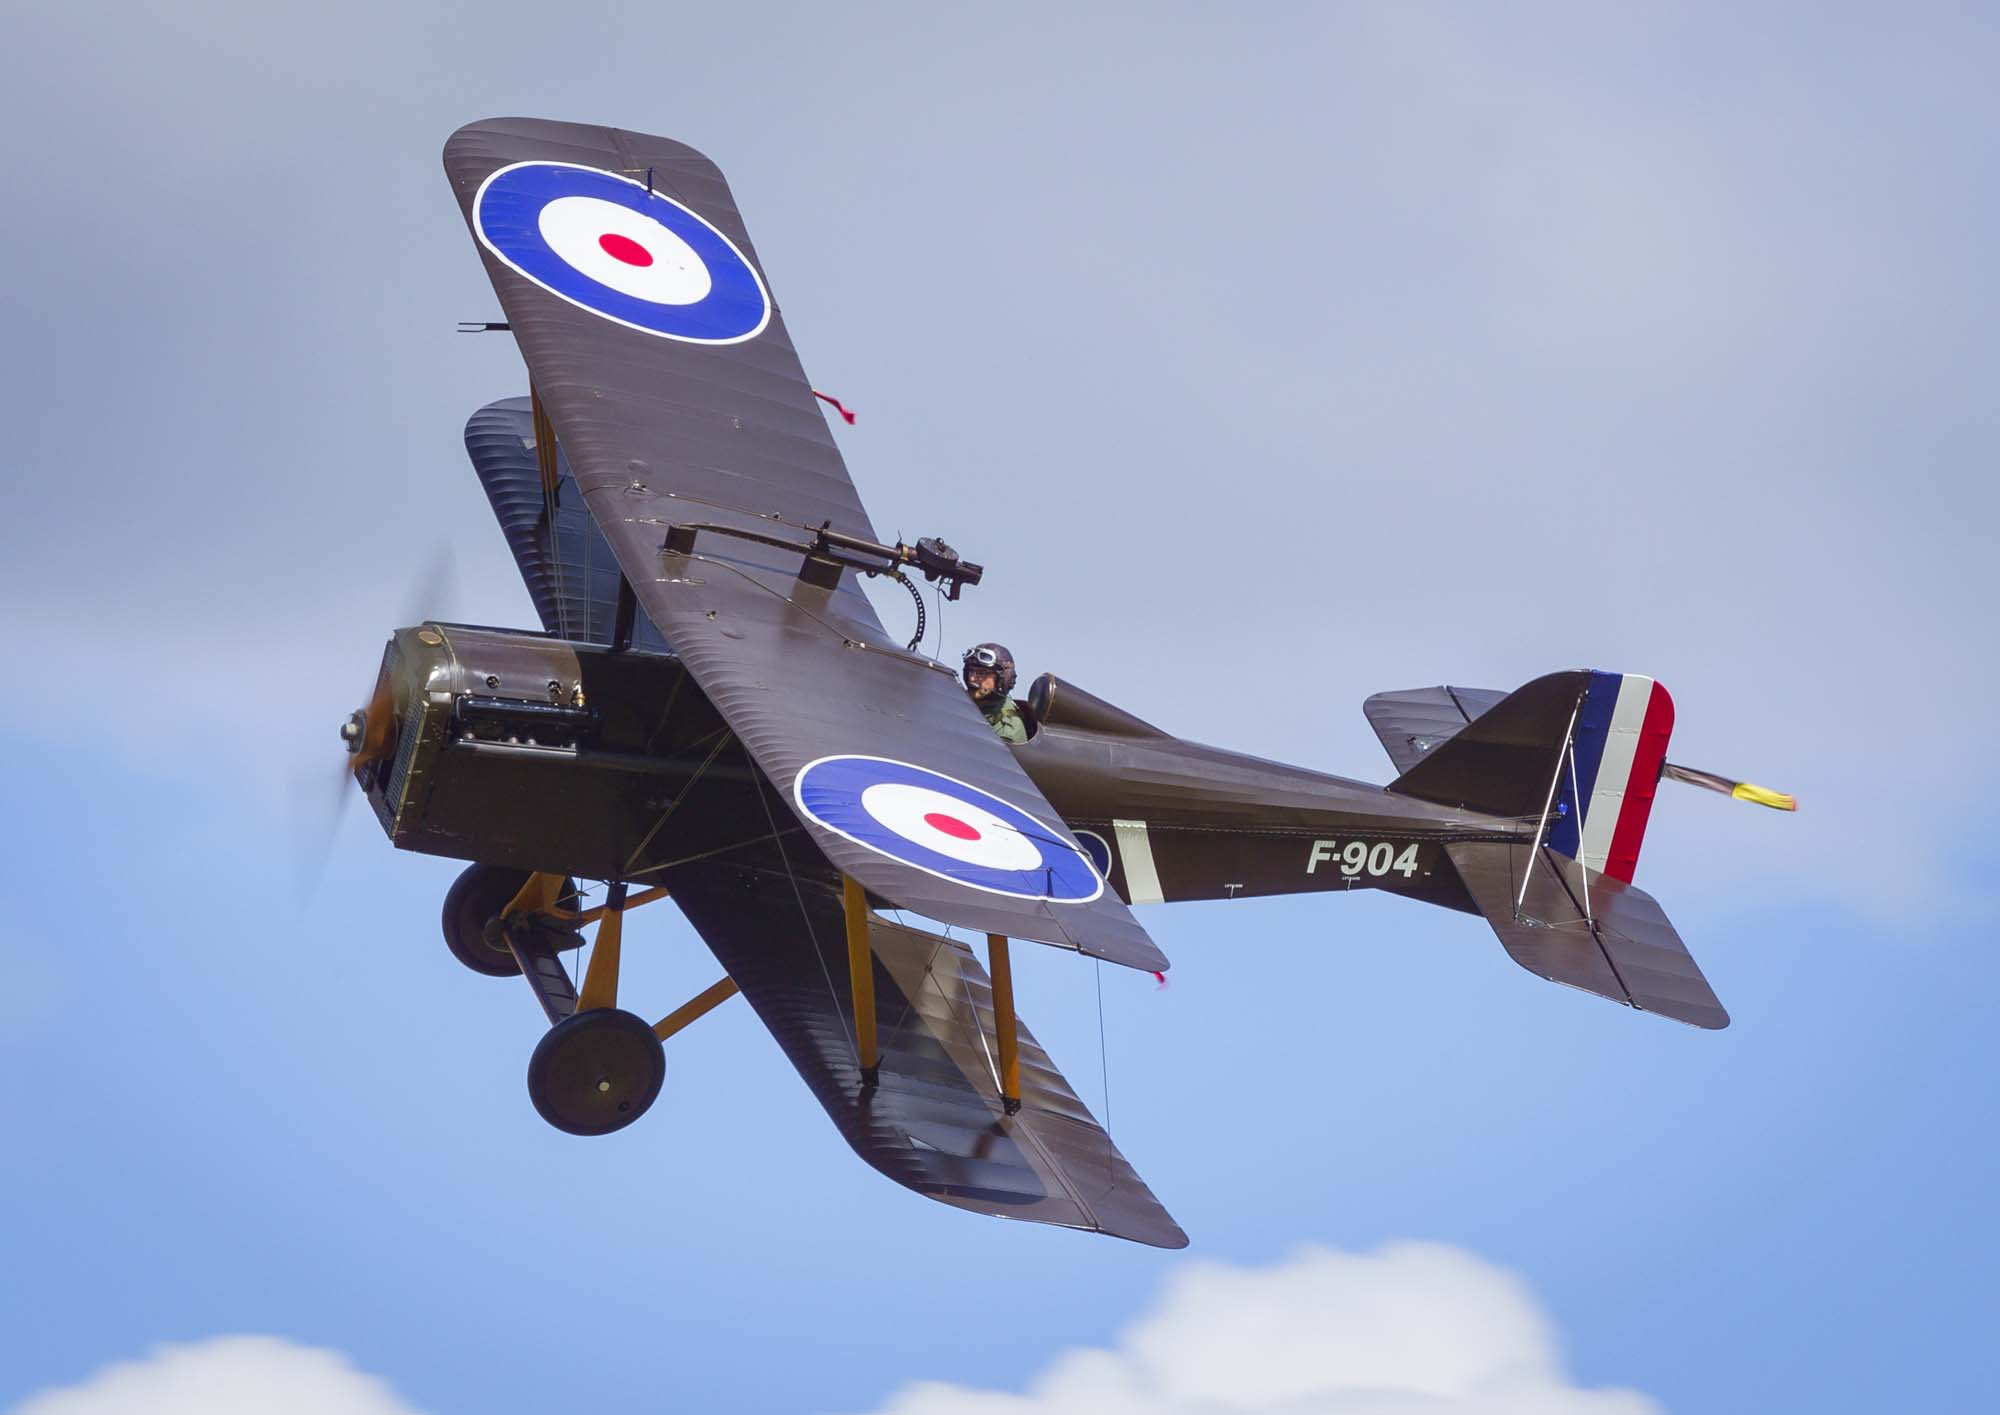 a photo of an RAF biplane with roundels flying across a blue sky with a few cotton clouds